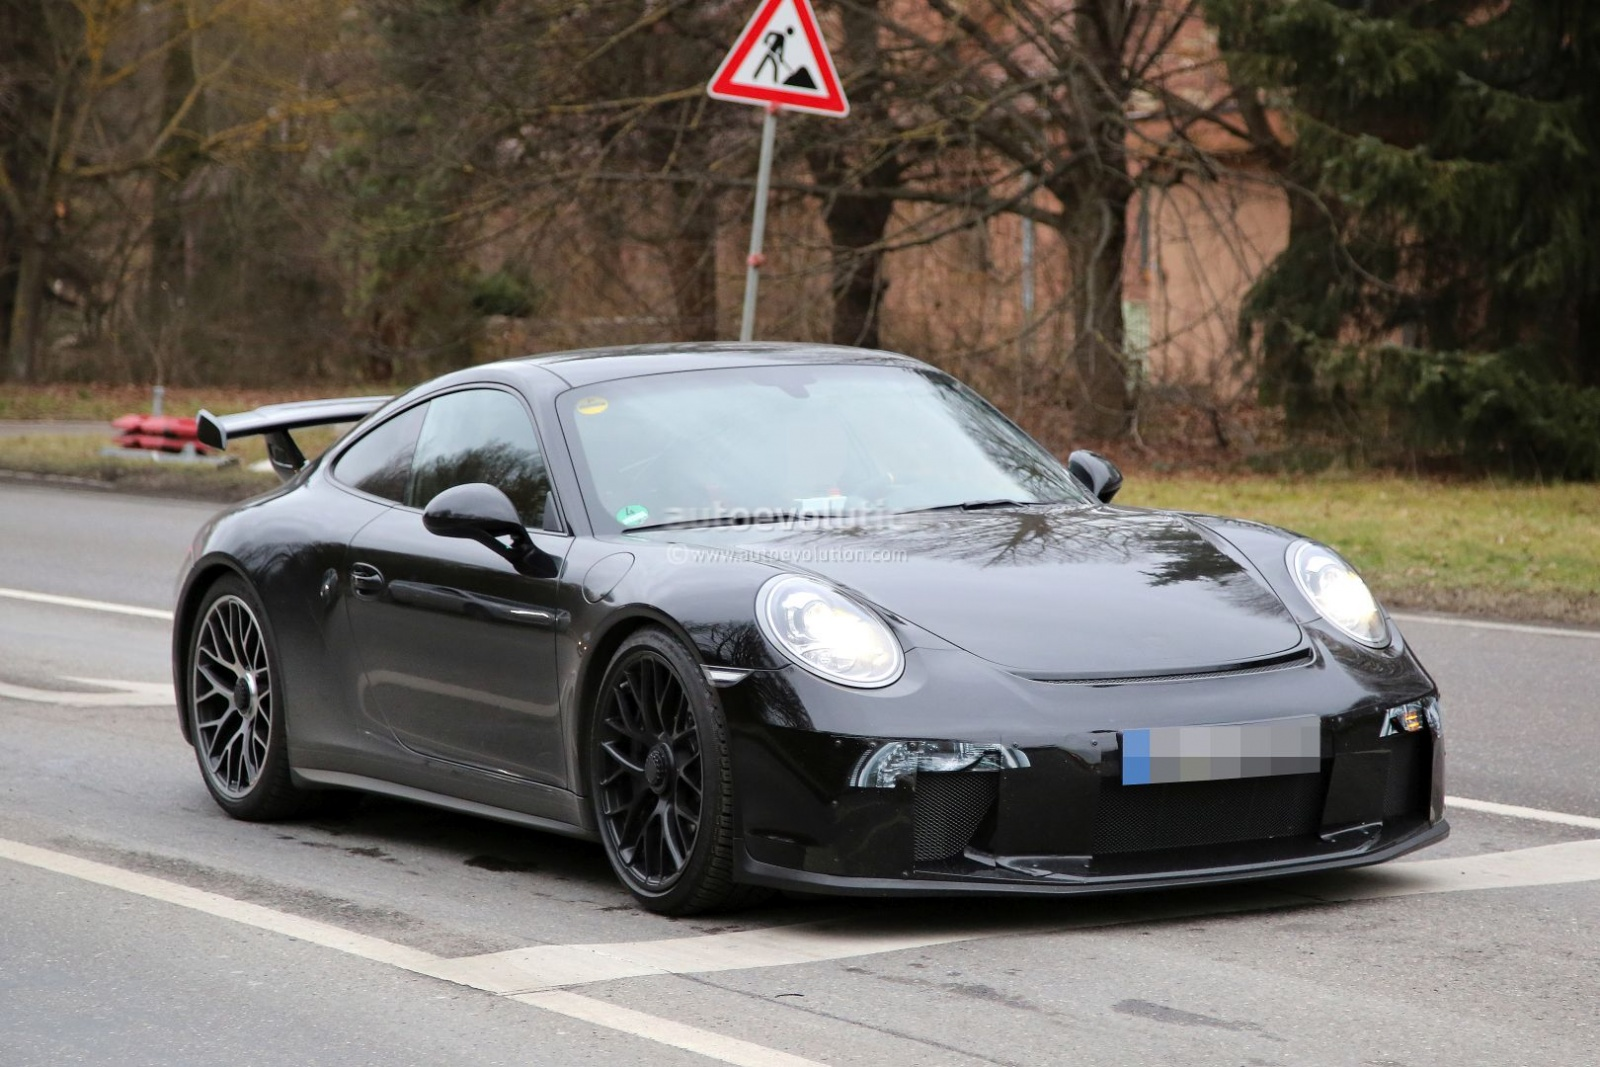 2017-porsche-911-gt3-facelift-spied-with-a-nose-job-should-come-later-this-year_1